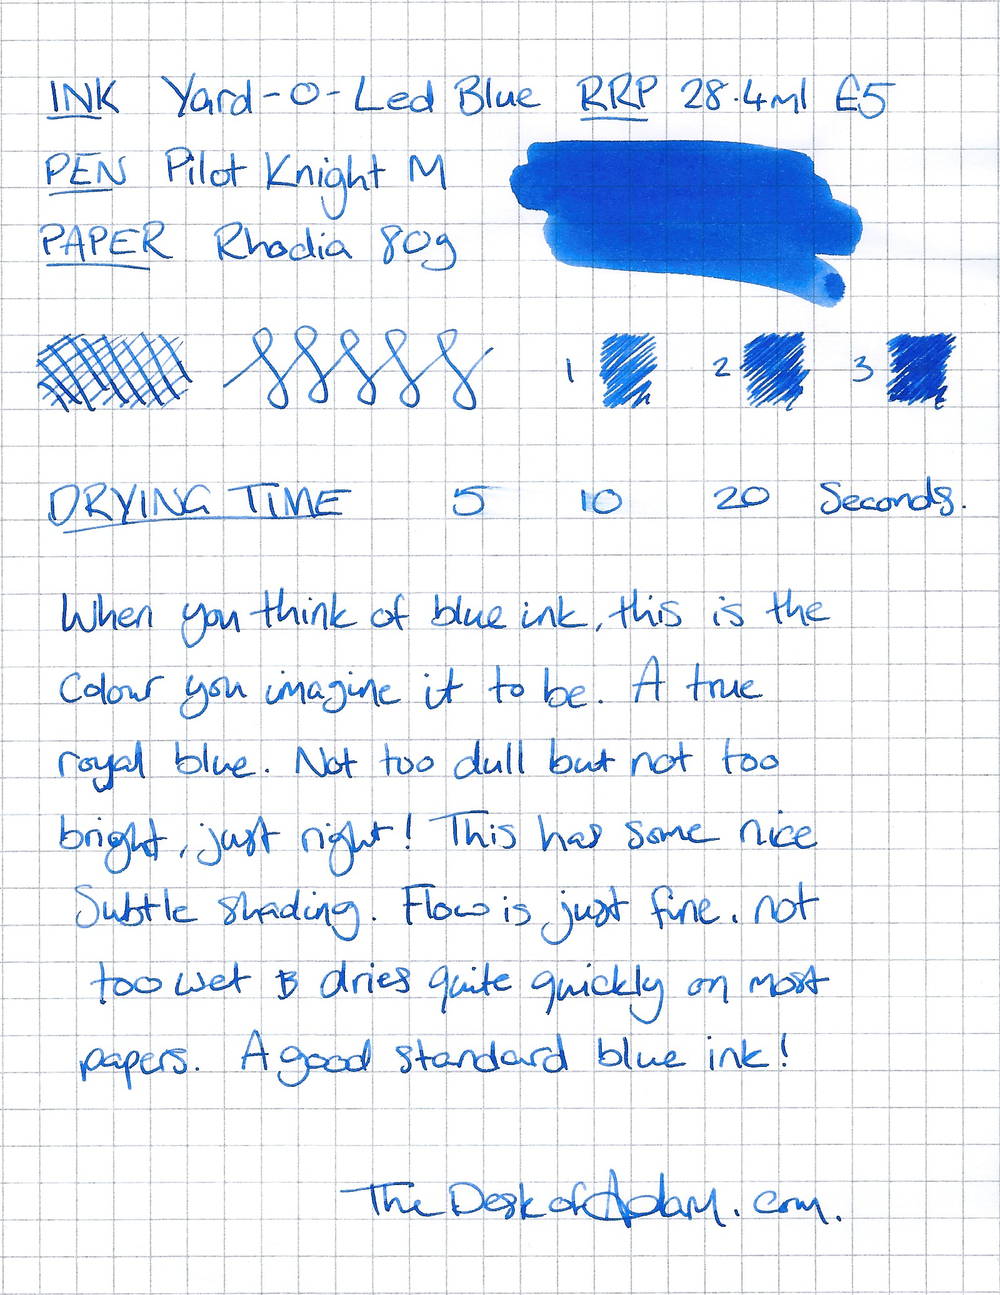 When you think of blue ink, this is the colour you imagine it to be. A true royal blue. Not too dull but not too bright, just right! This has some nice subtle shading. Flow is just fine, not too wet & dries quite quickly on most papers. a good standard blue ink!